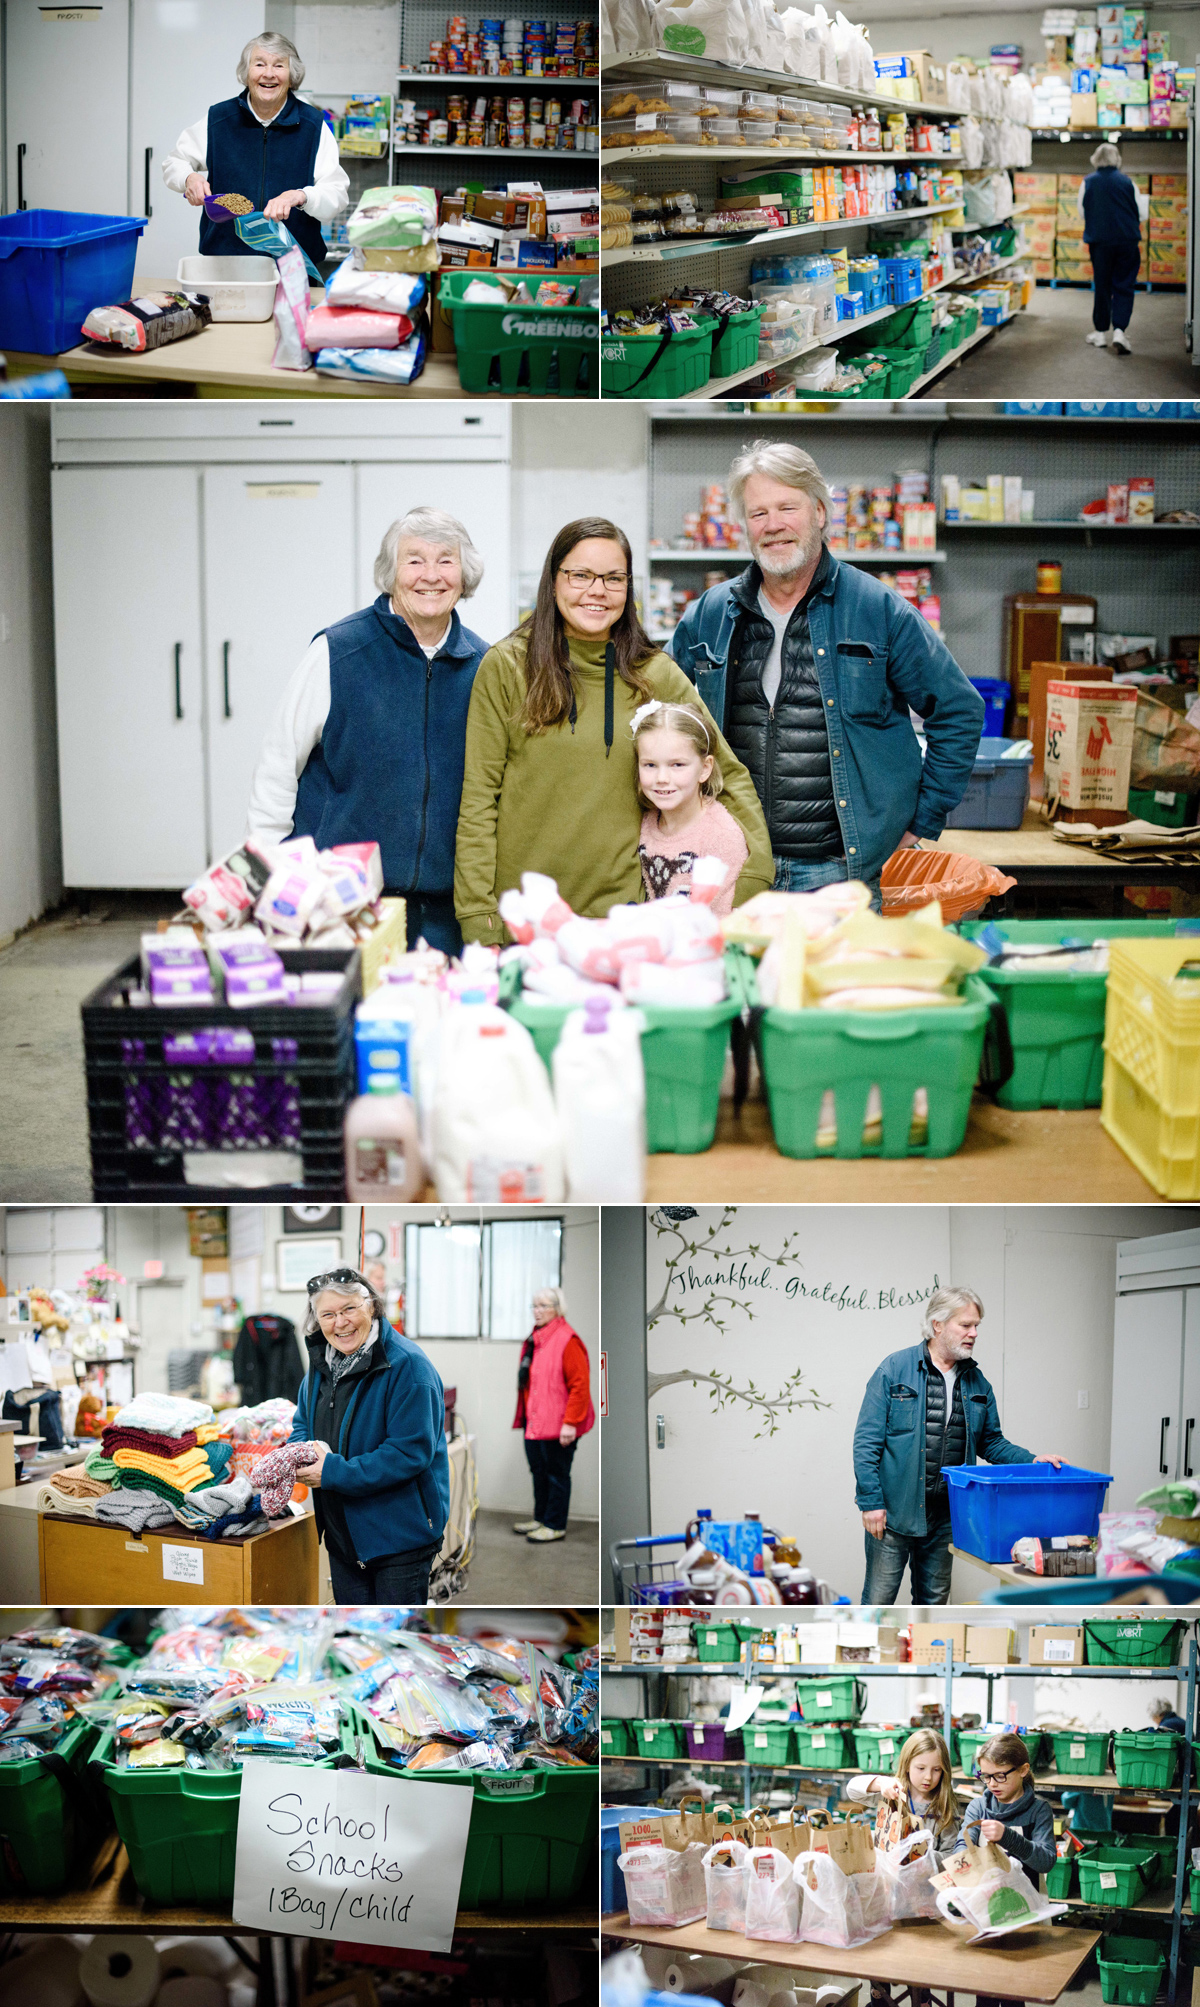 campbell river food bank, campbell river helping